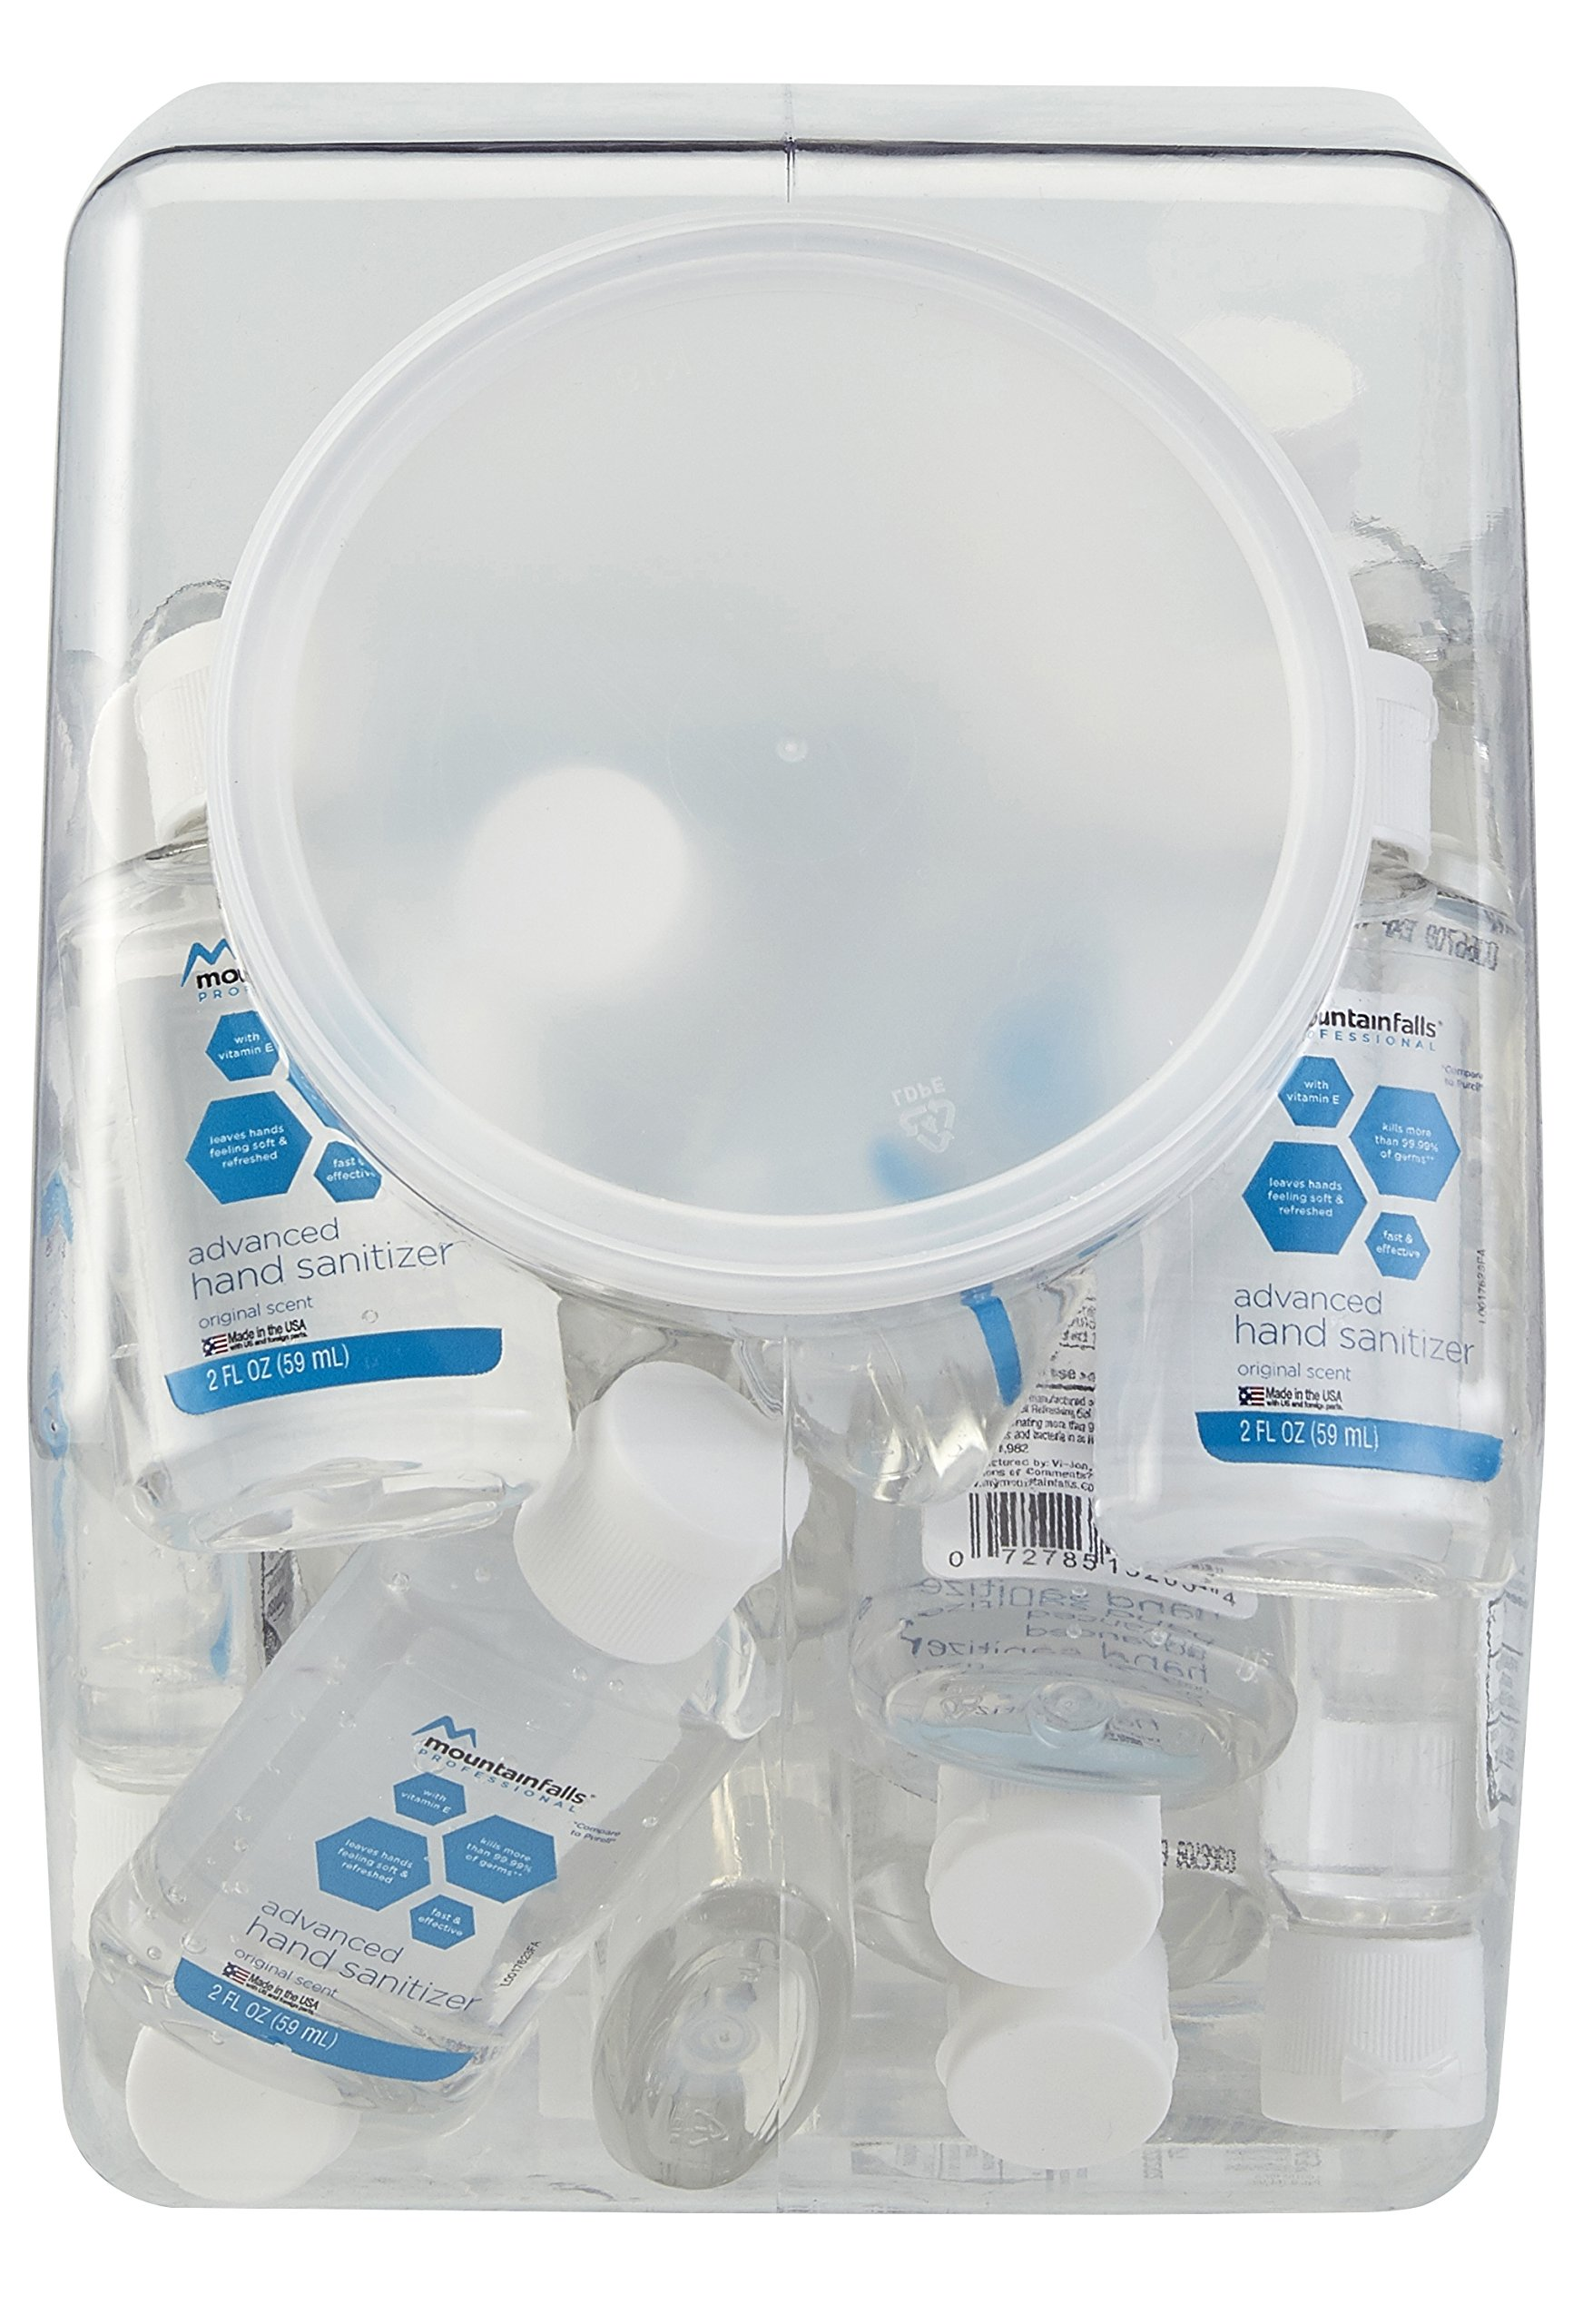 Mountain Falls Professional Advanced Original Hand Sanitizer Fishbowl with 36, 2 Fluid Ounce Bottles by Mountain Falls (Image #1)